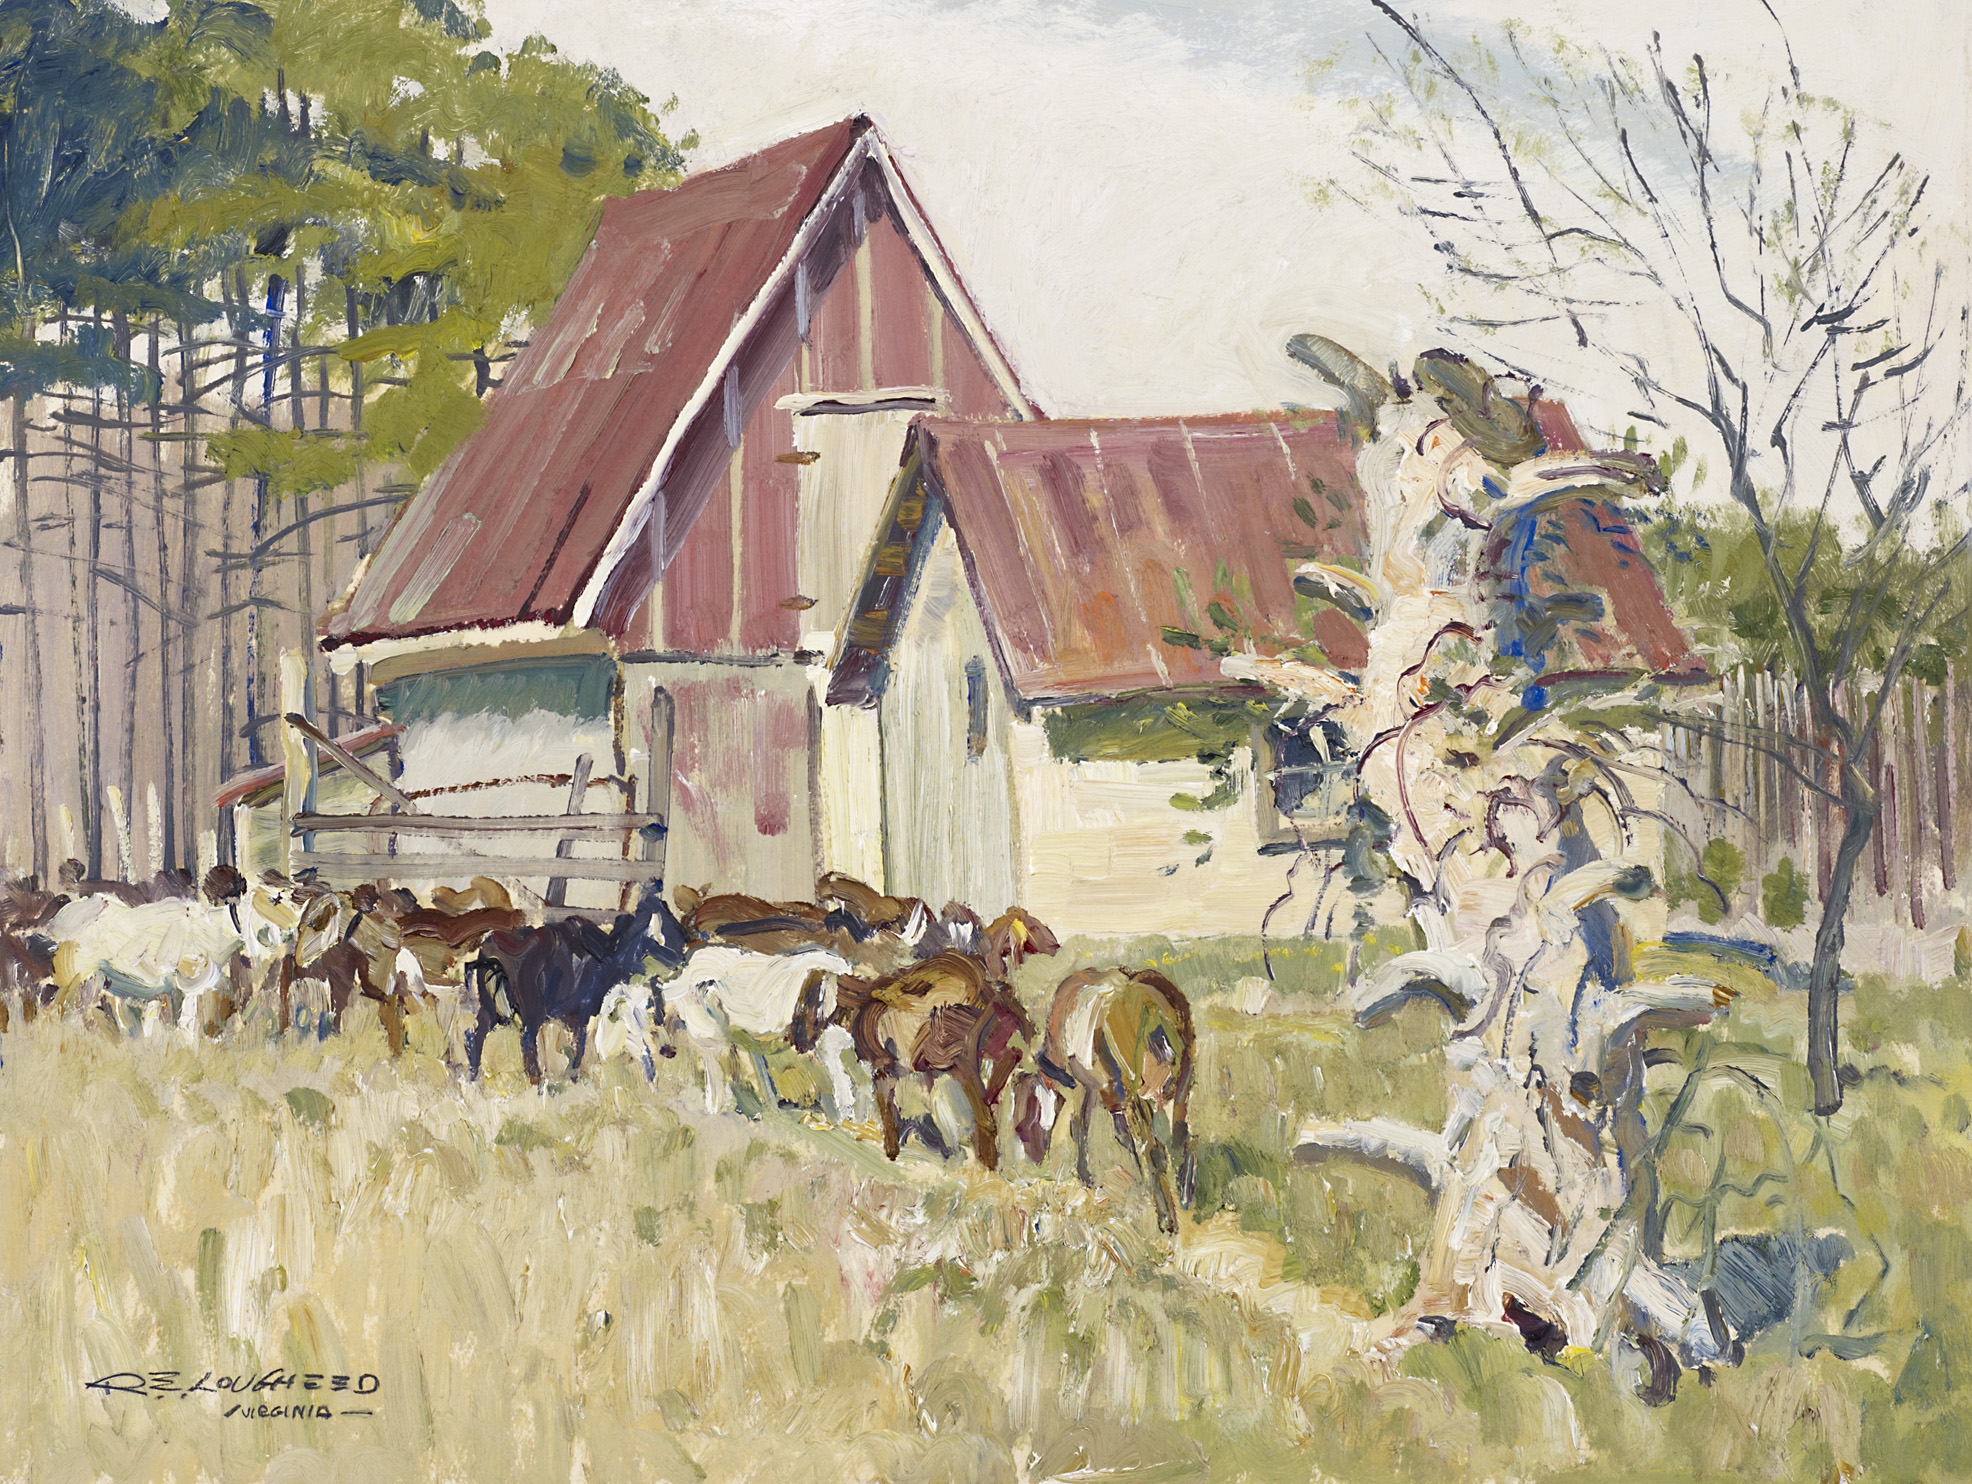 Virginia Shed and Goa... by  Robert Lougheed - Masterpiece Online